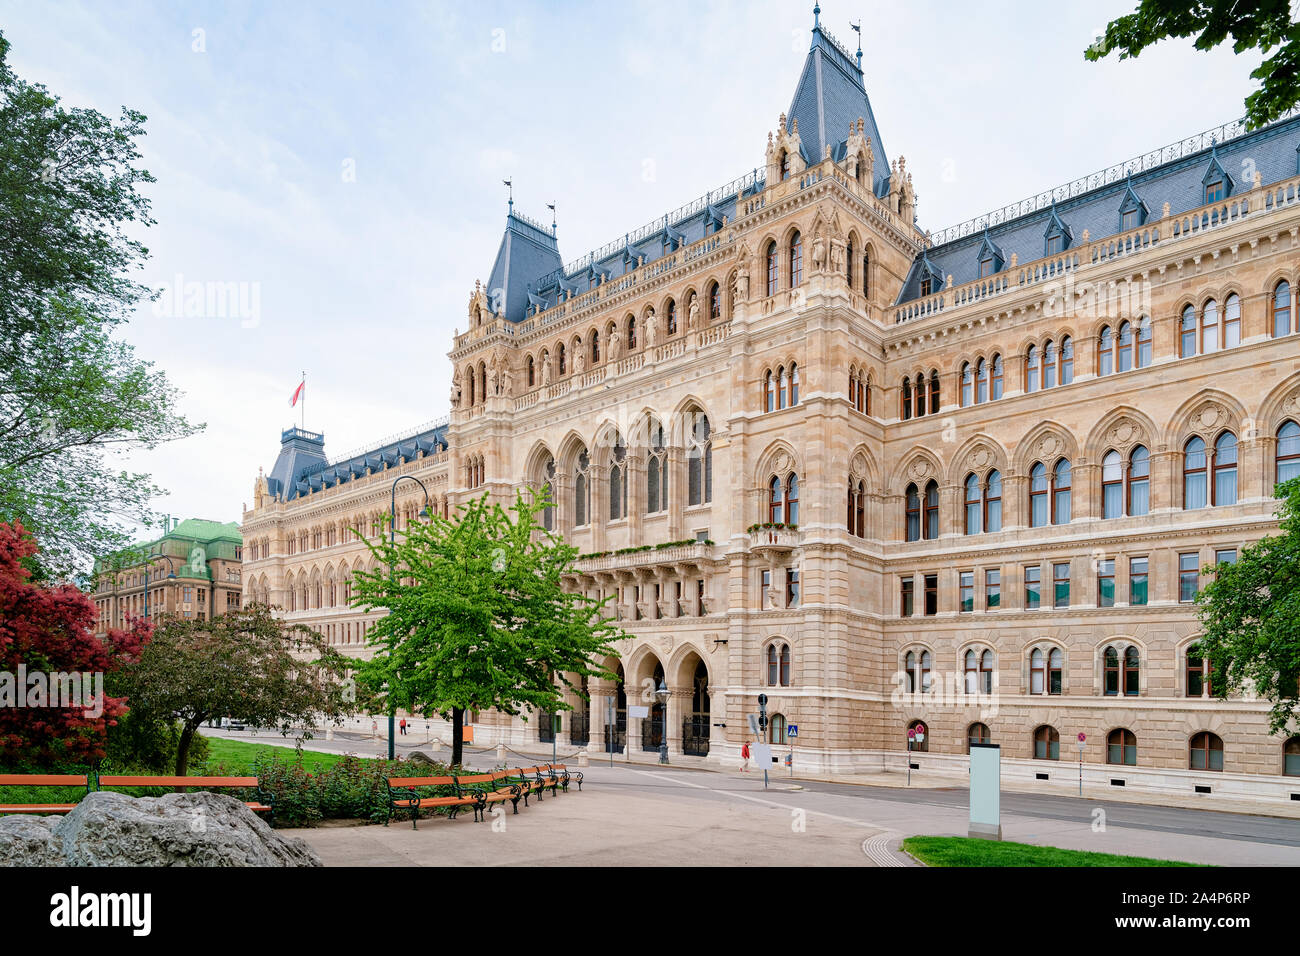 Bundeskanzleramt or Austrian Federal Chancellery on Ballhausplatz Square in Vienna Stock Photo